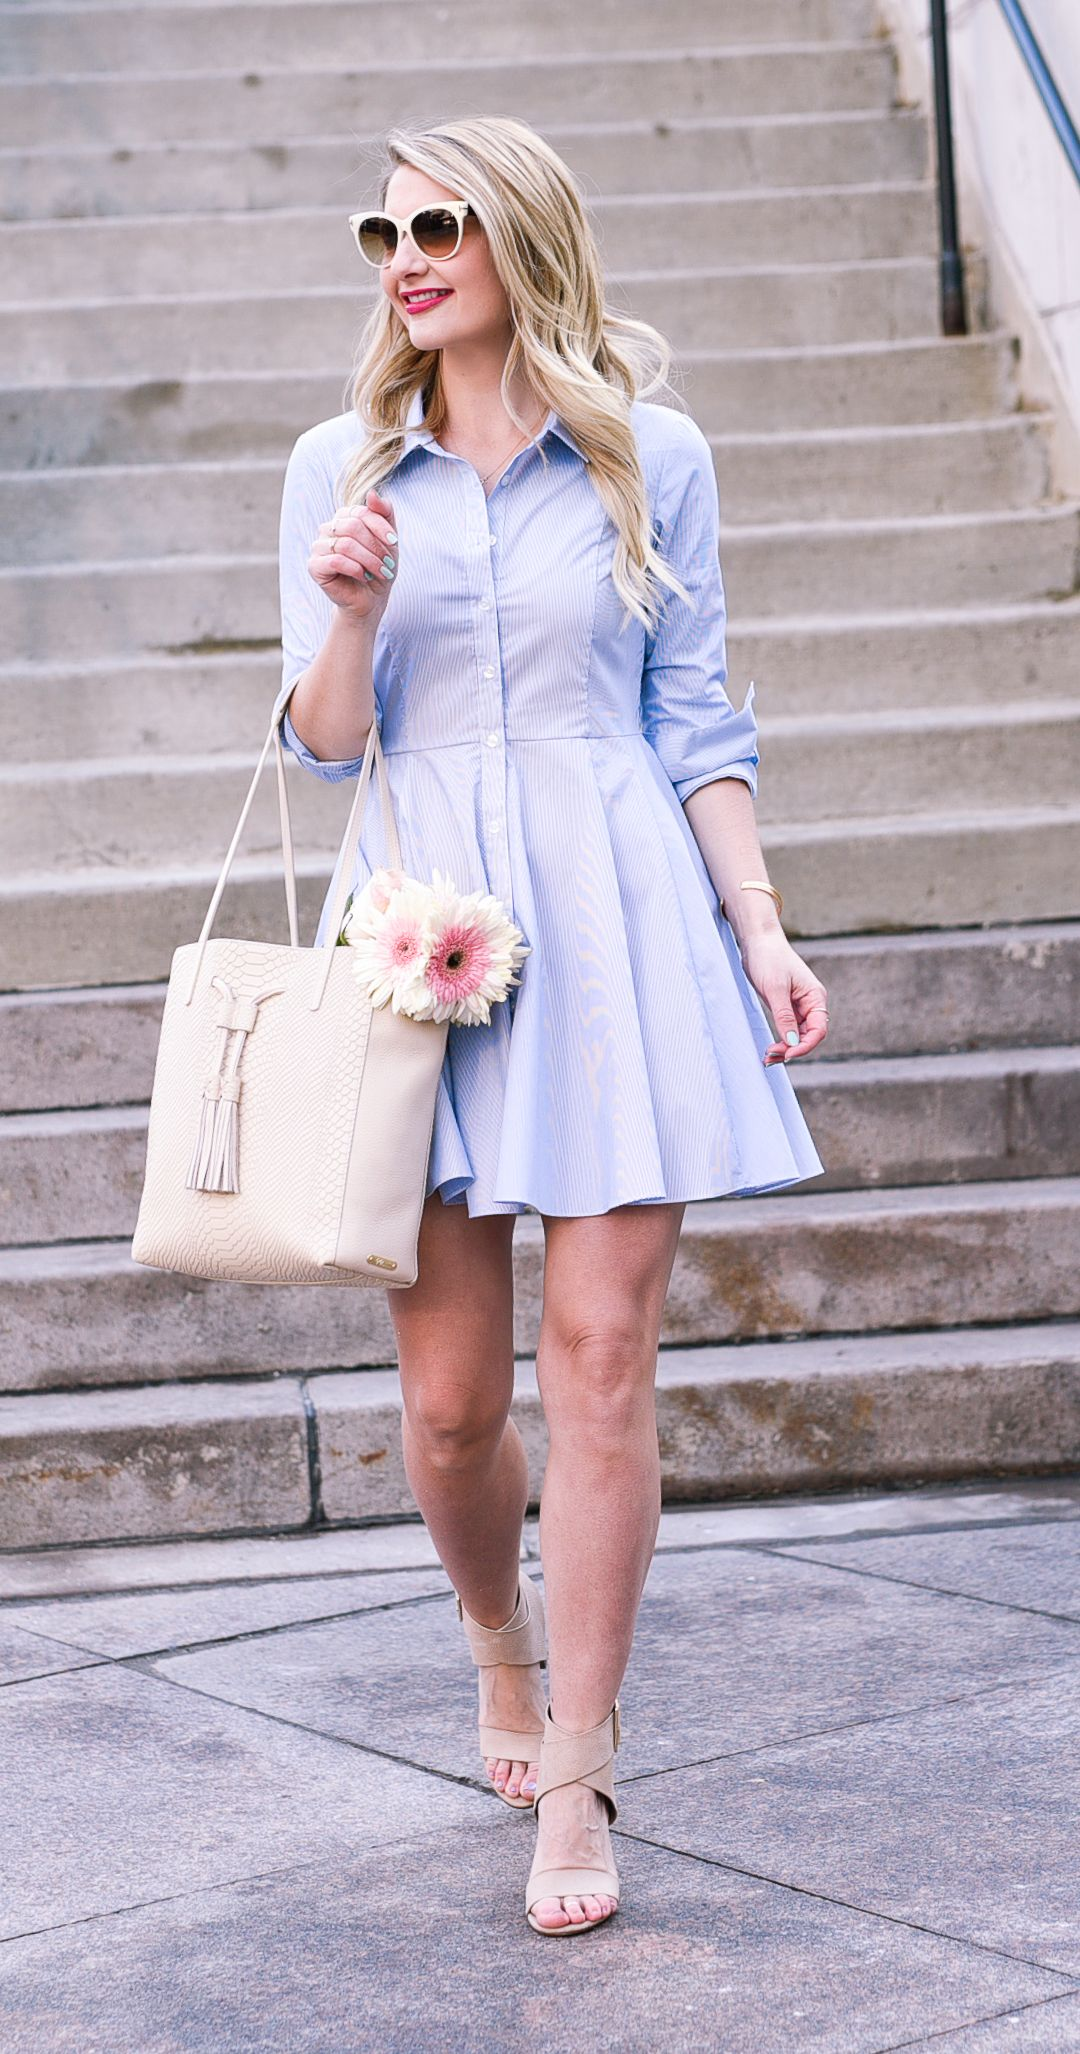 A blue shirtdress and spring accessories warm weather weather and